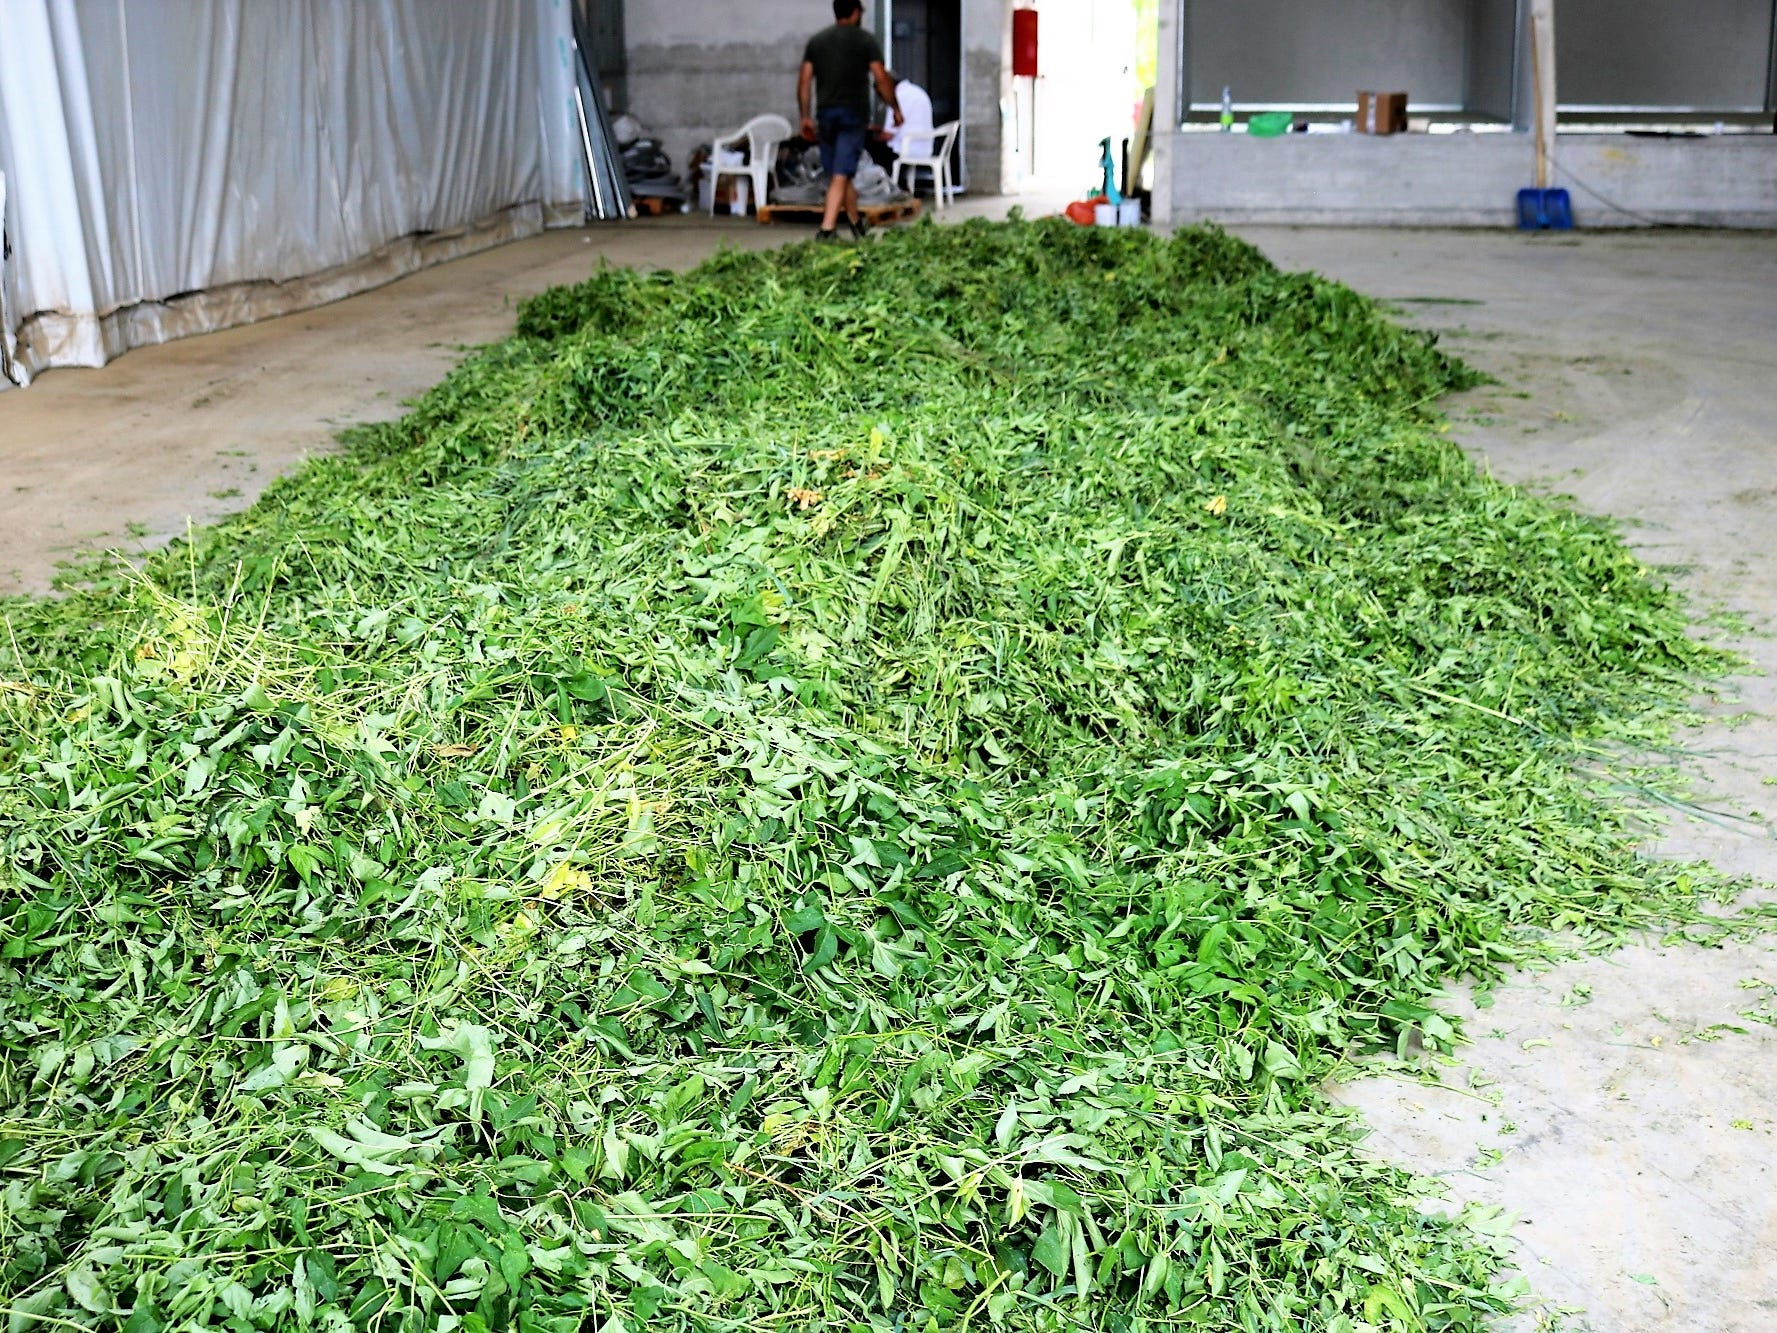 Once harvested, fresh botanicals are taken to the cooperative to be dried. The drying process takes one to several days with moderate heat, to avoid altering or ruining flavor. Dried botanicals will be stored until winter, at which point there's time to go back and process the botanicals for production.